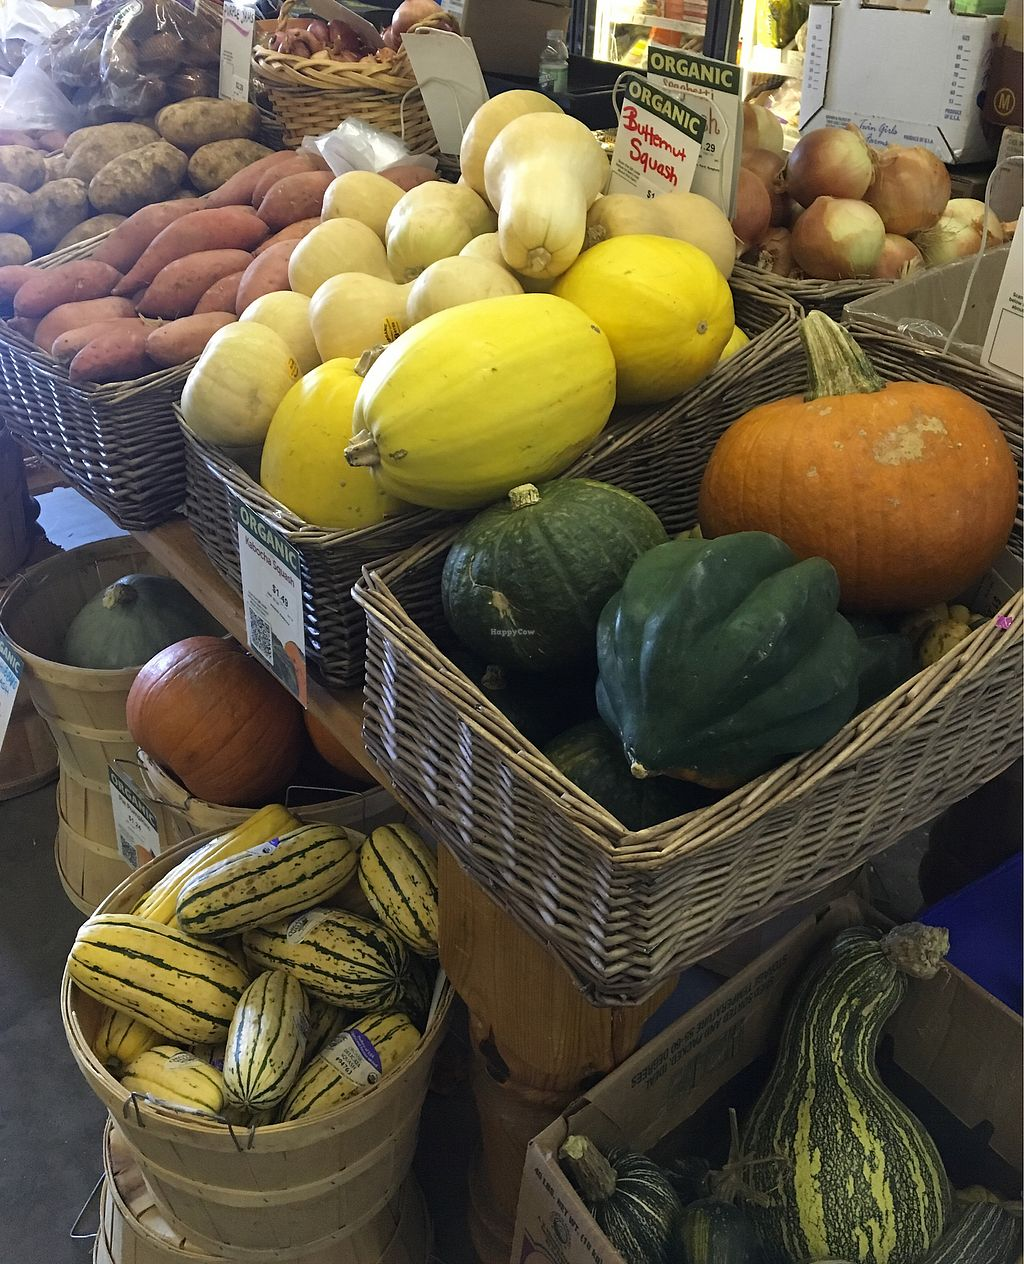 """Photo of Blue Water Natural Foods  by <a href=""""/members/profile/MaryAnneRohrdanz"""">MaryAnneRohrdanz</a> <br/>Some of the produce (fall season) <br/> November 22, 2017  - <a href='/contact/abuse/image/16506/327977'>Report</a>"""